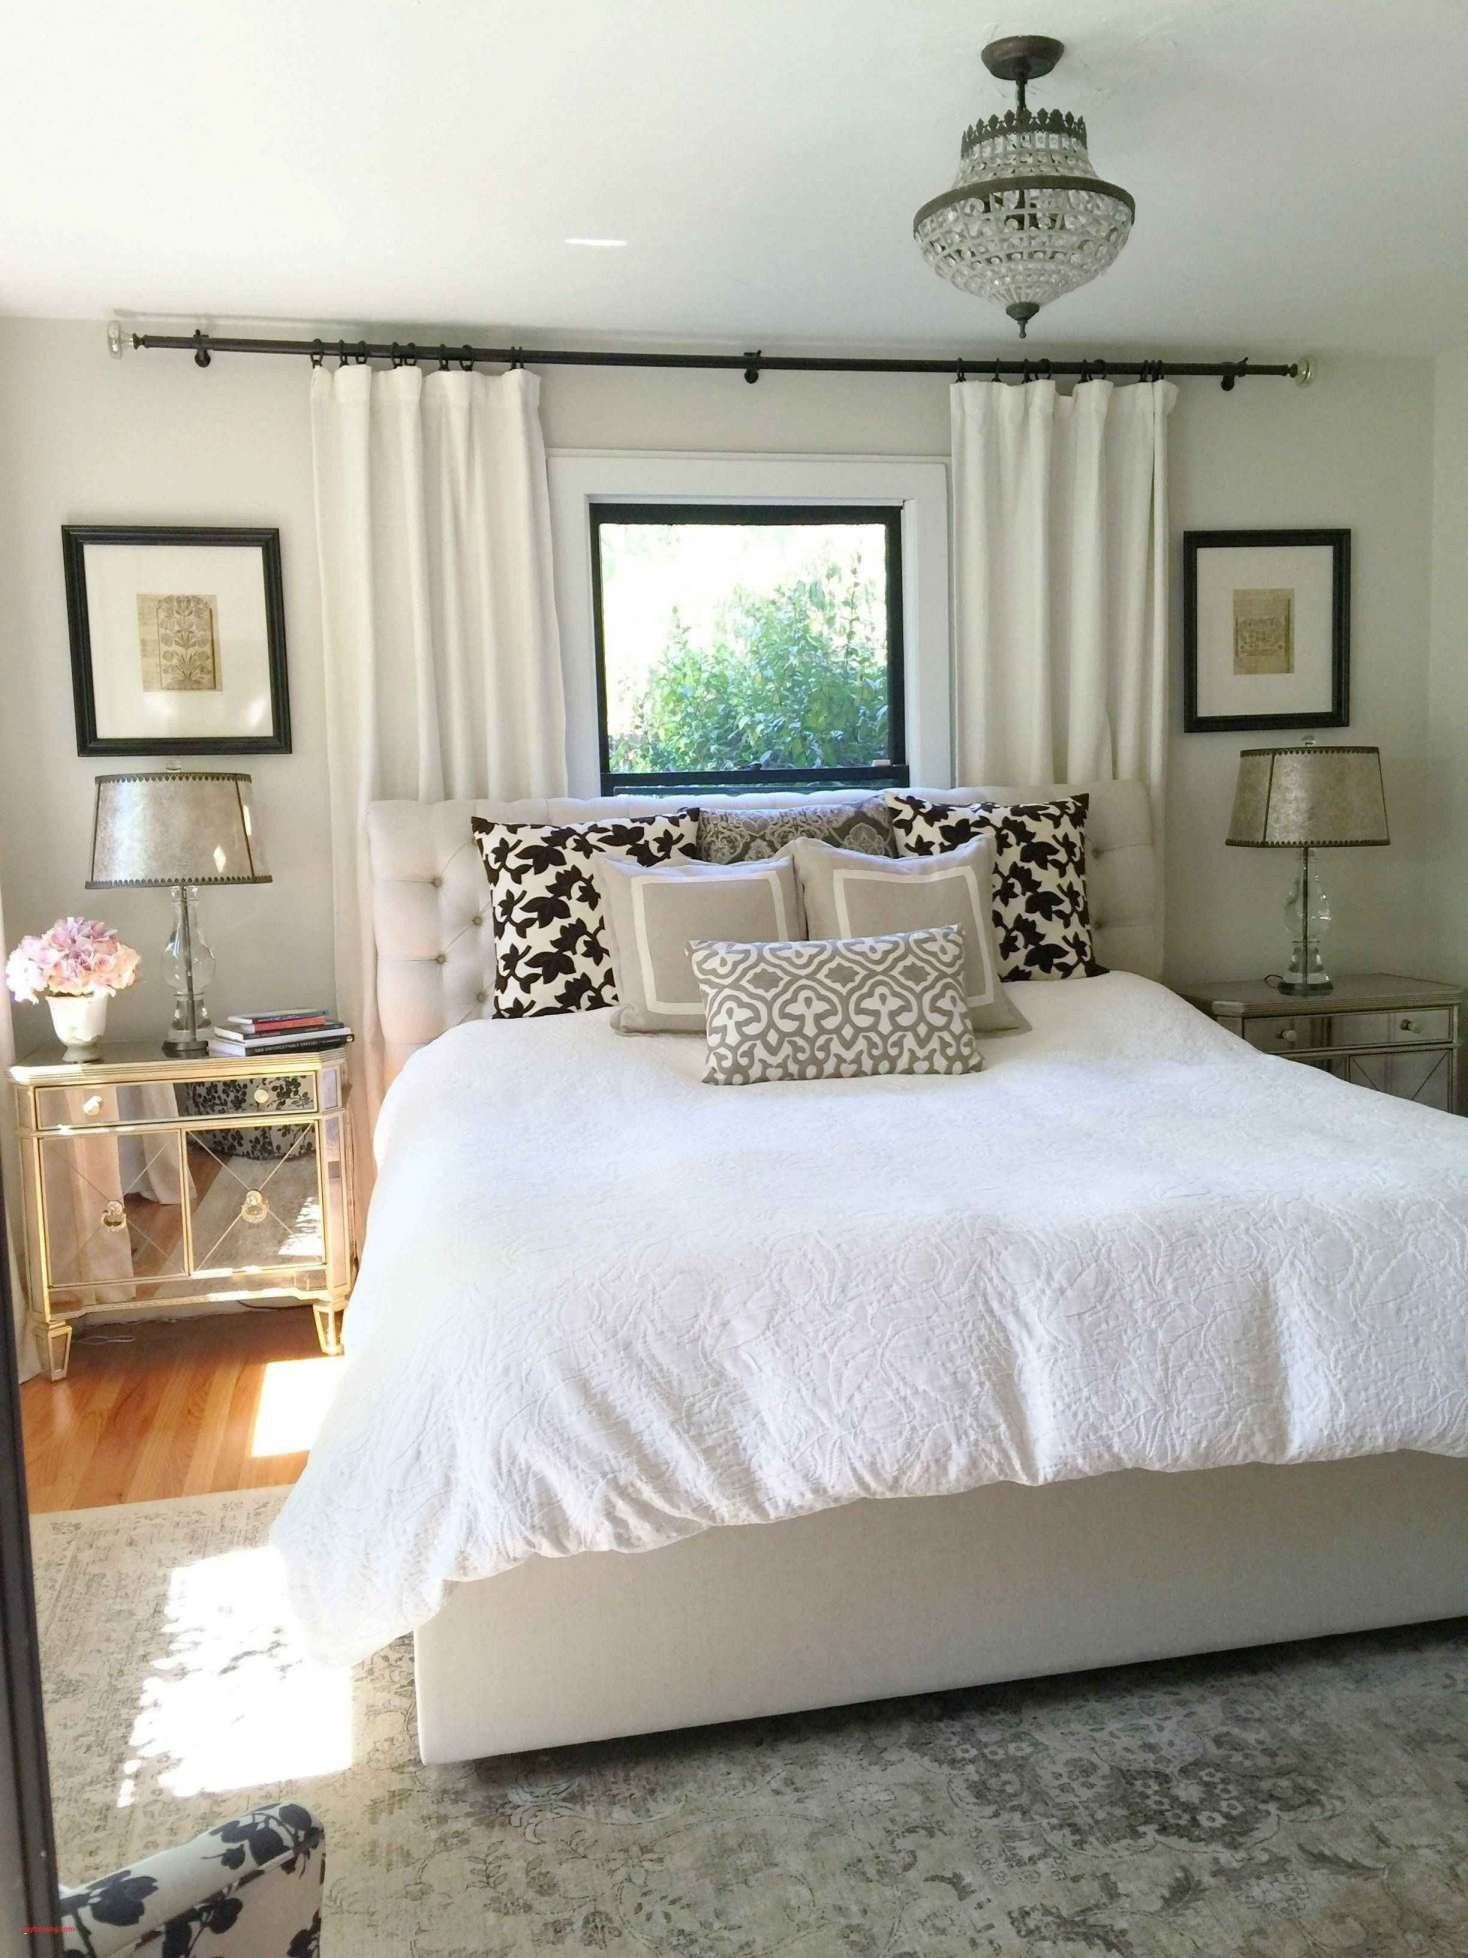 Cheap Bedroom Makeover Ideas Elegant 50 Beautiful Master Bedroom Decorating Ideas A Bud Of Beaut Gold Living Room Decor Bedroom Interior Bedroom Furniture Sets